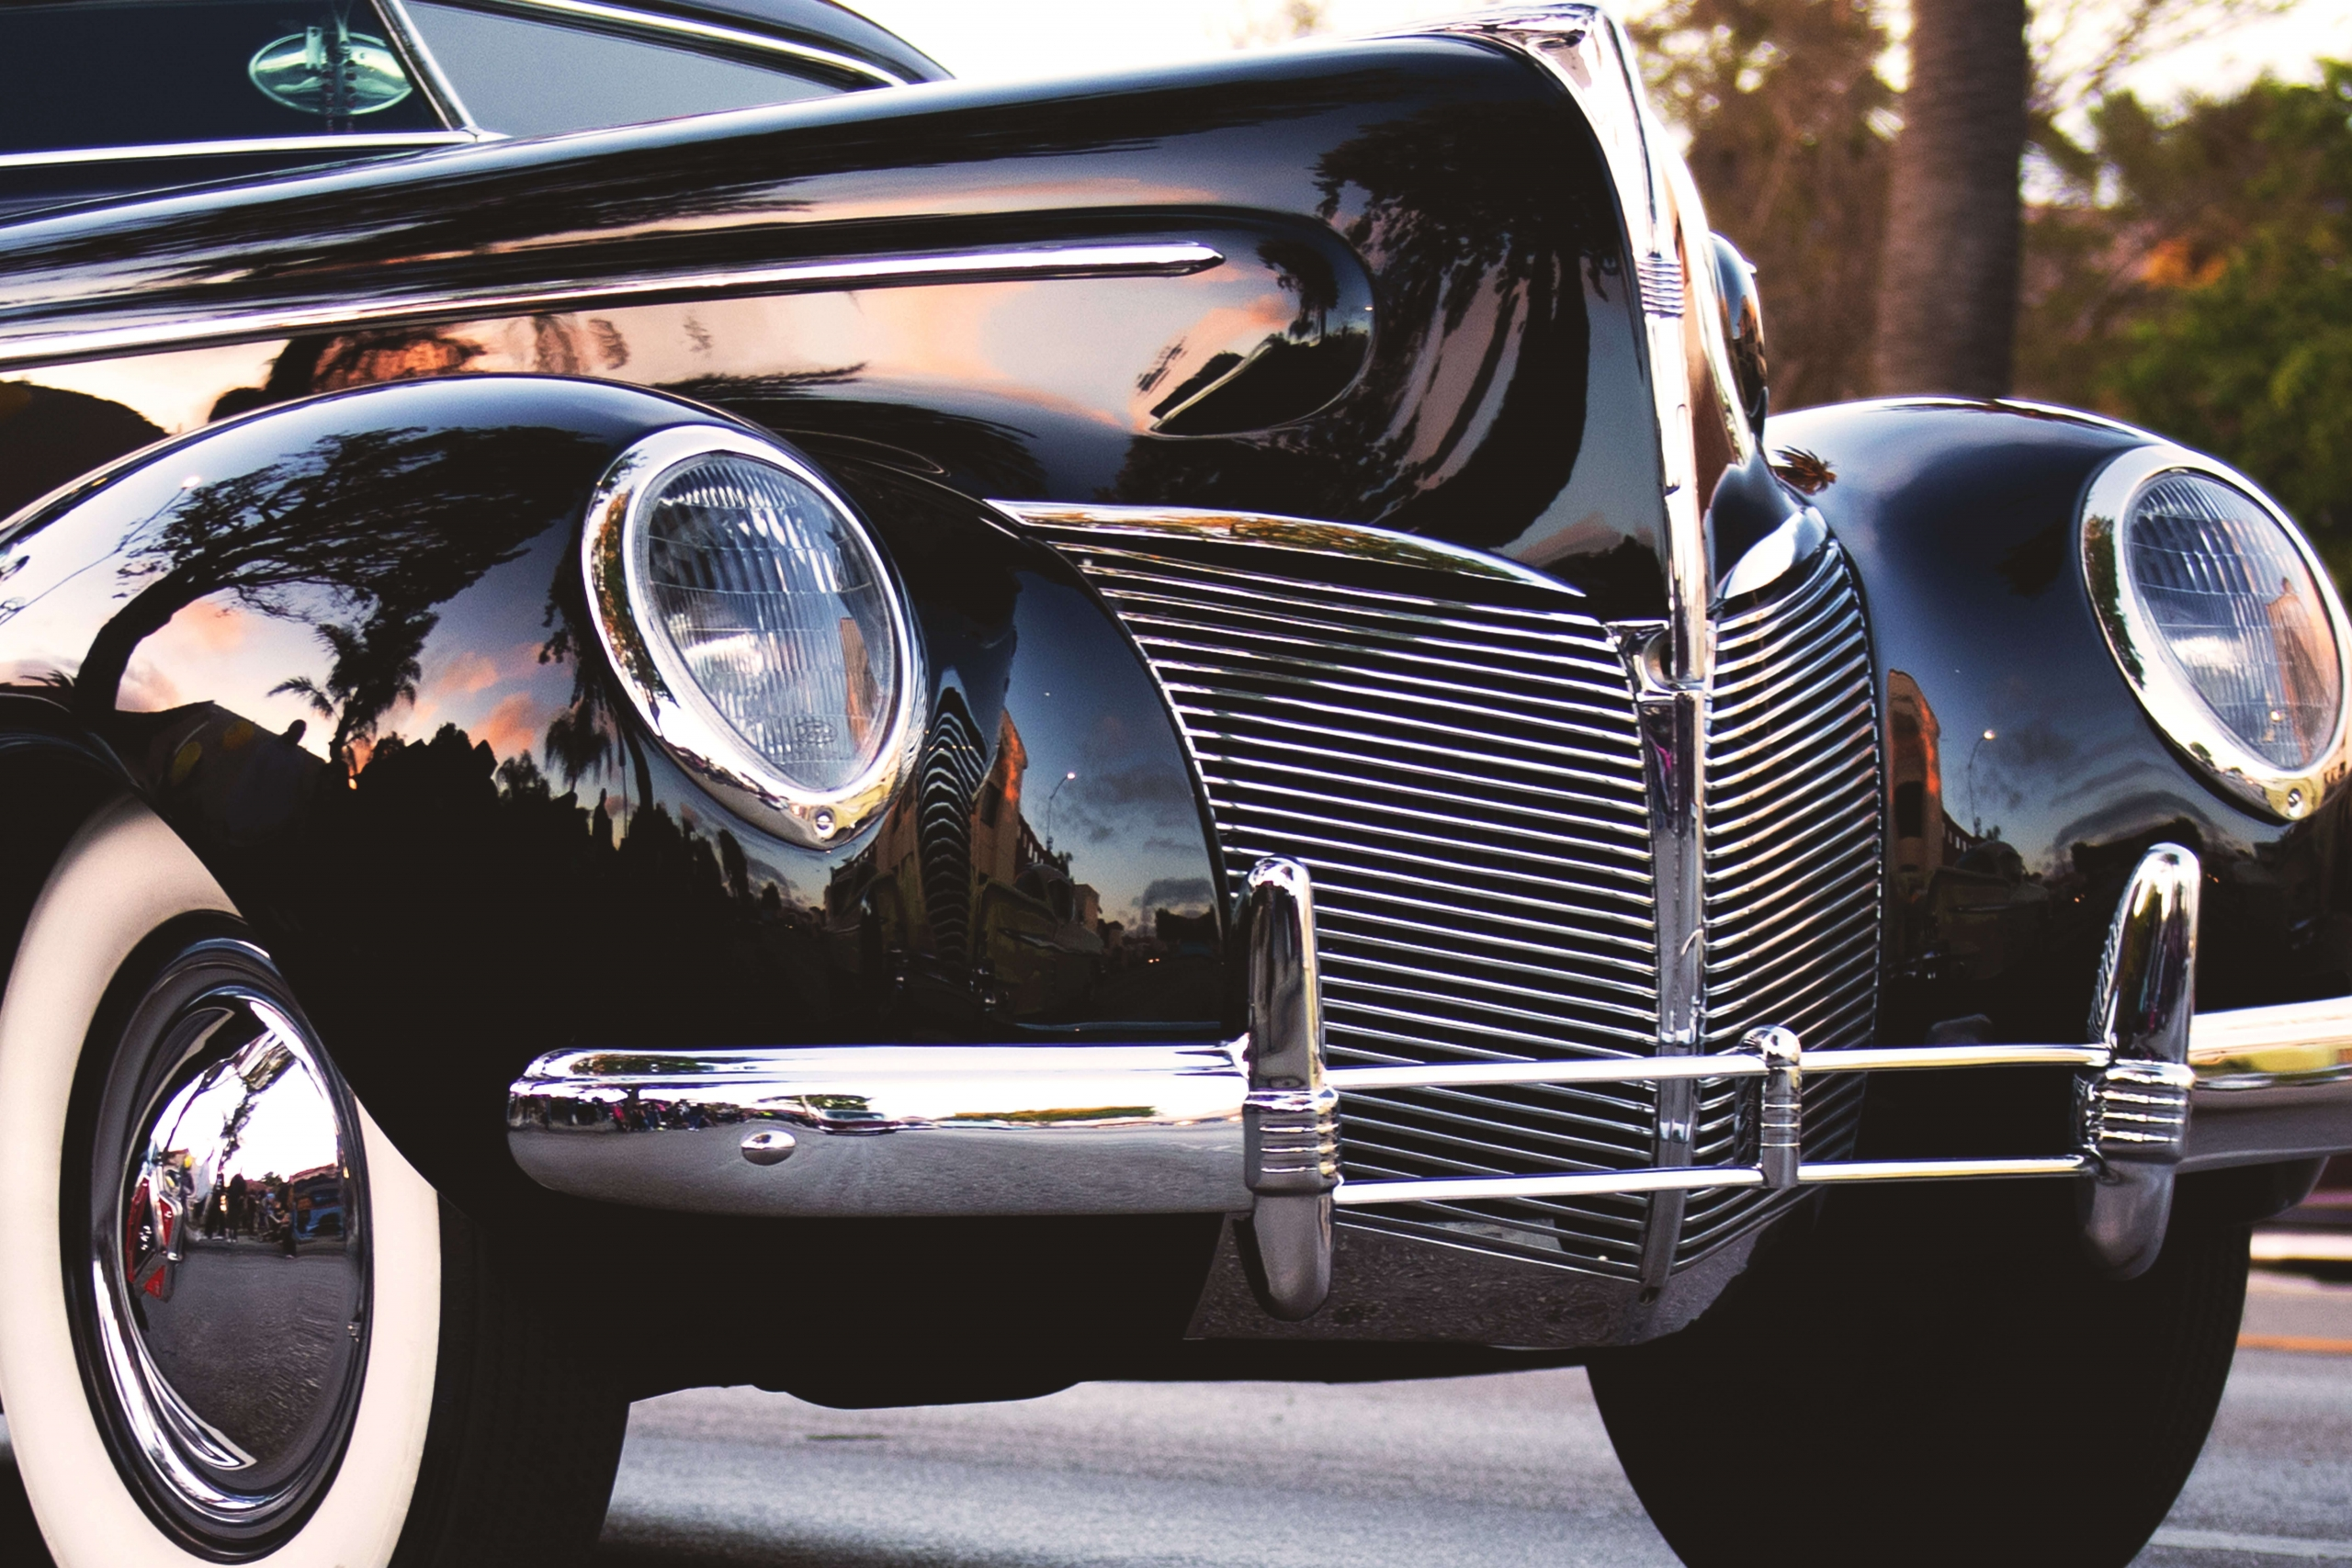 Top 7 Most Expensive Classic Cars In the World as of 2021